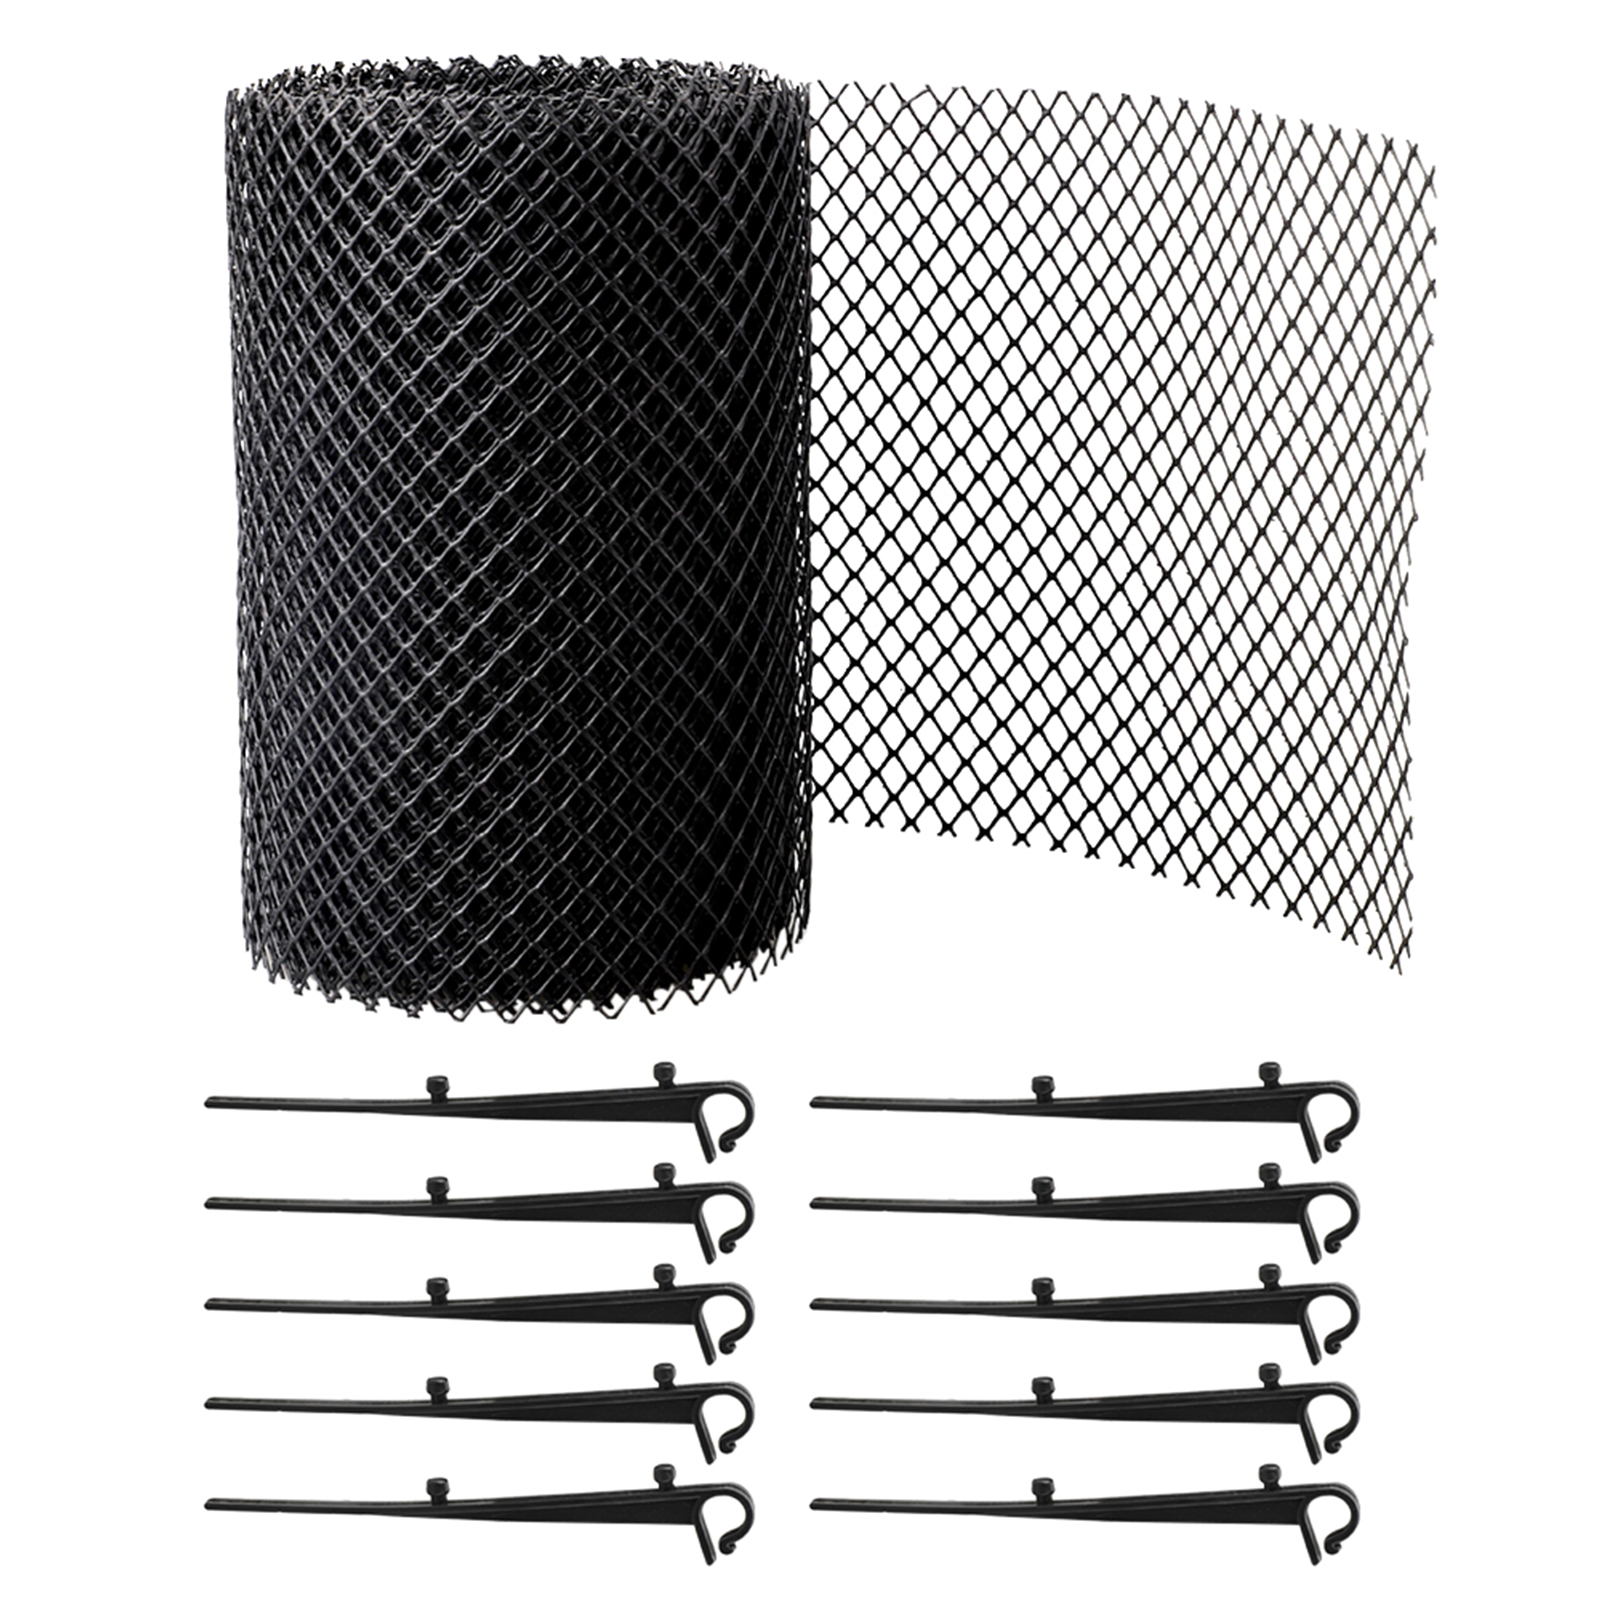 With Stakes Stops Leaves Anti Clogging Mesh Cover Balcony Easy Install Gutter Guard Flexible Drain Reduce Overflow Cleaning Tool